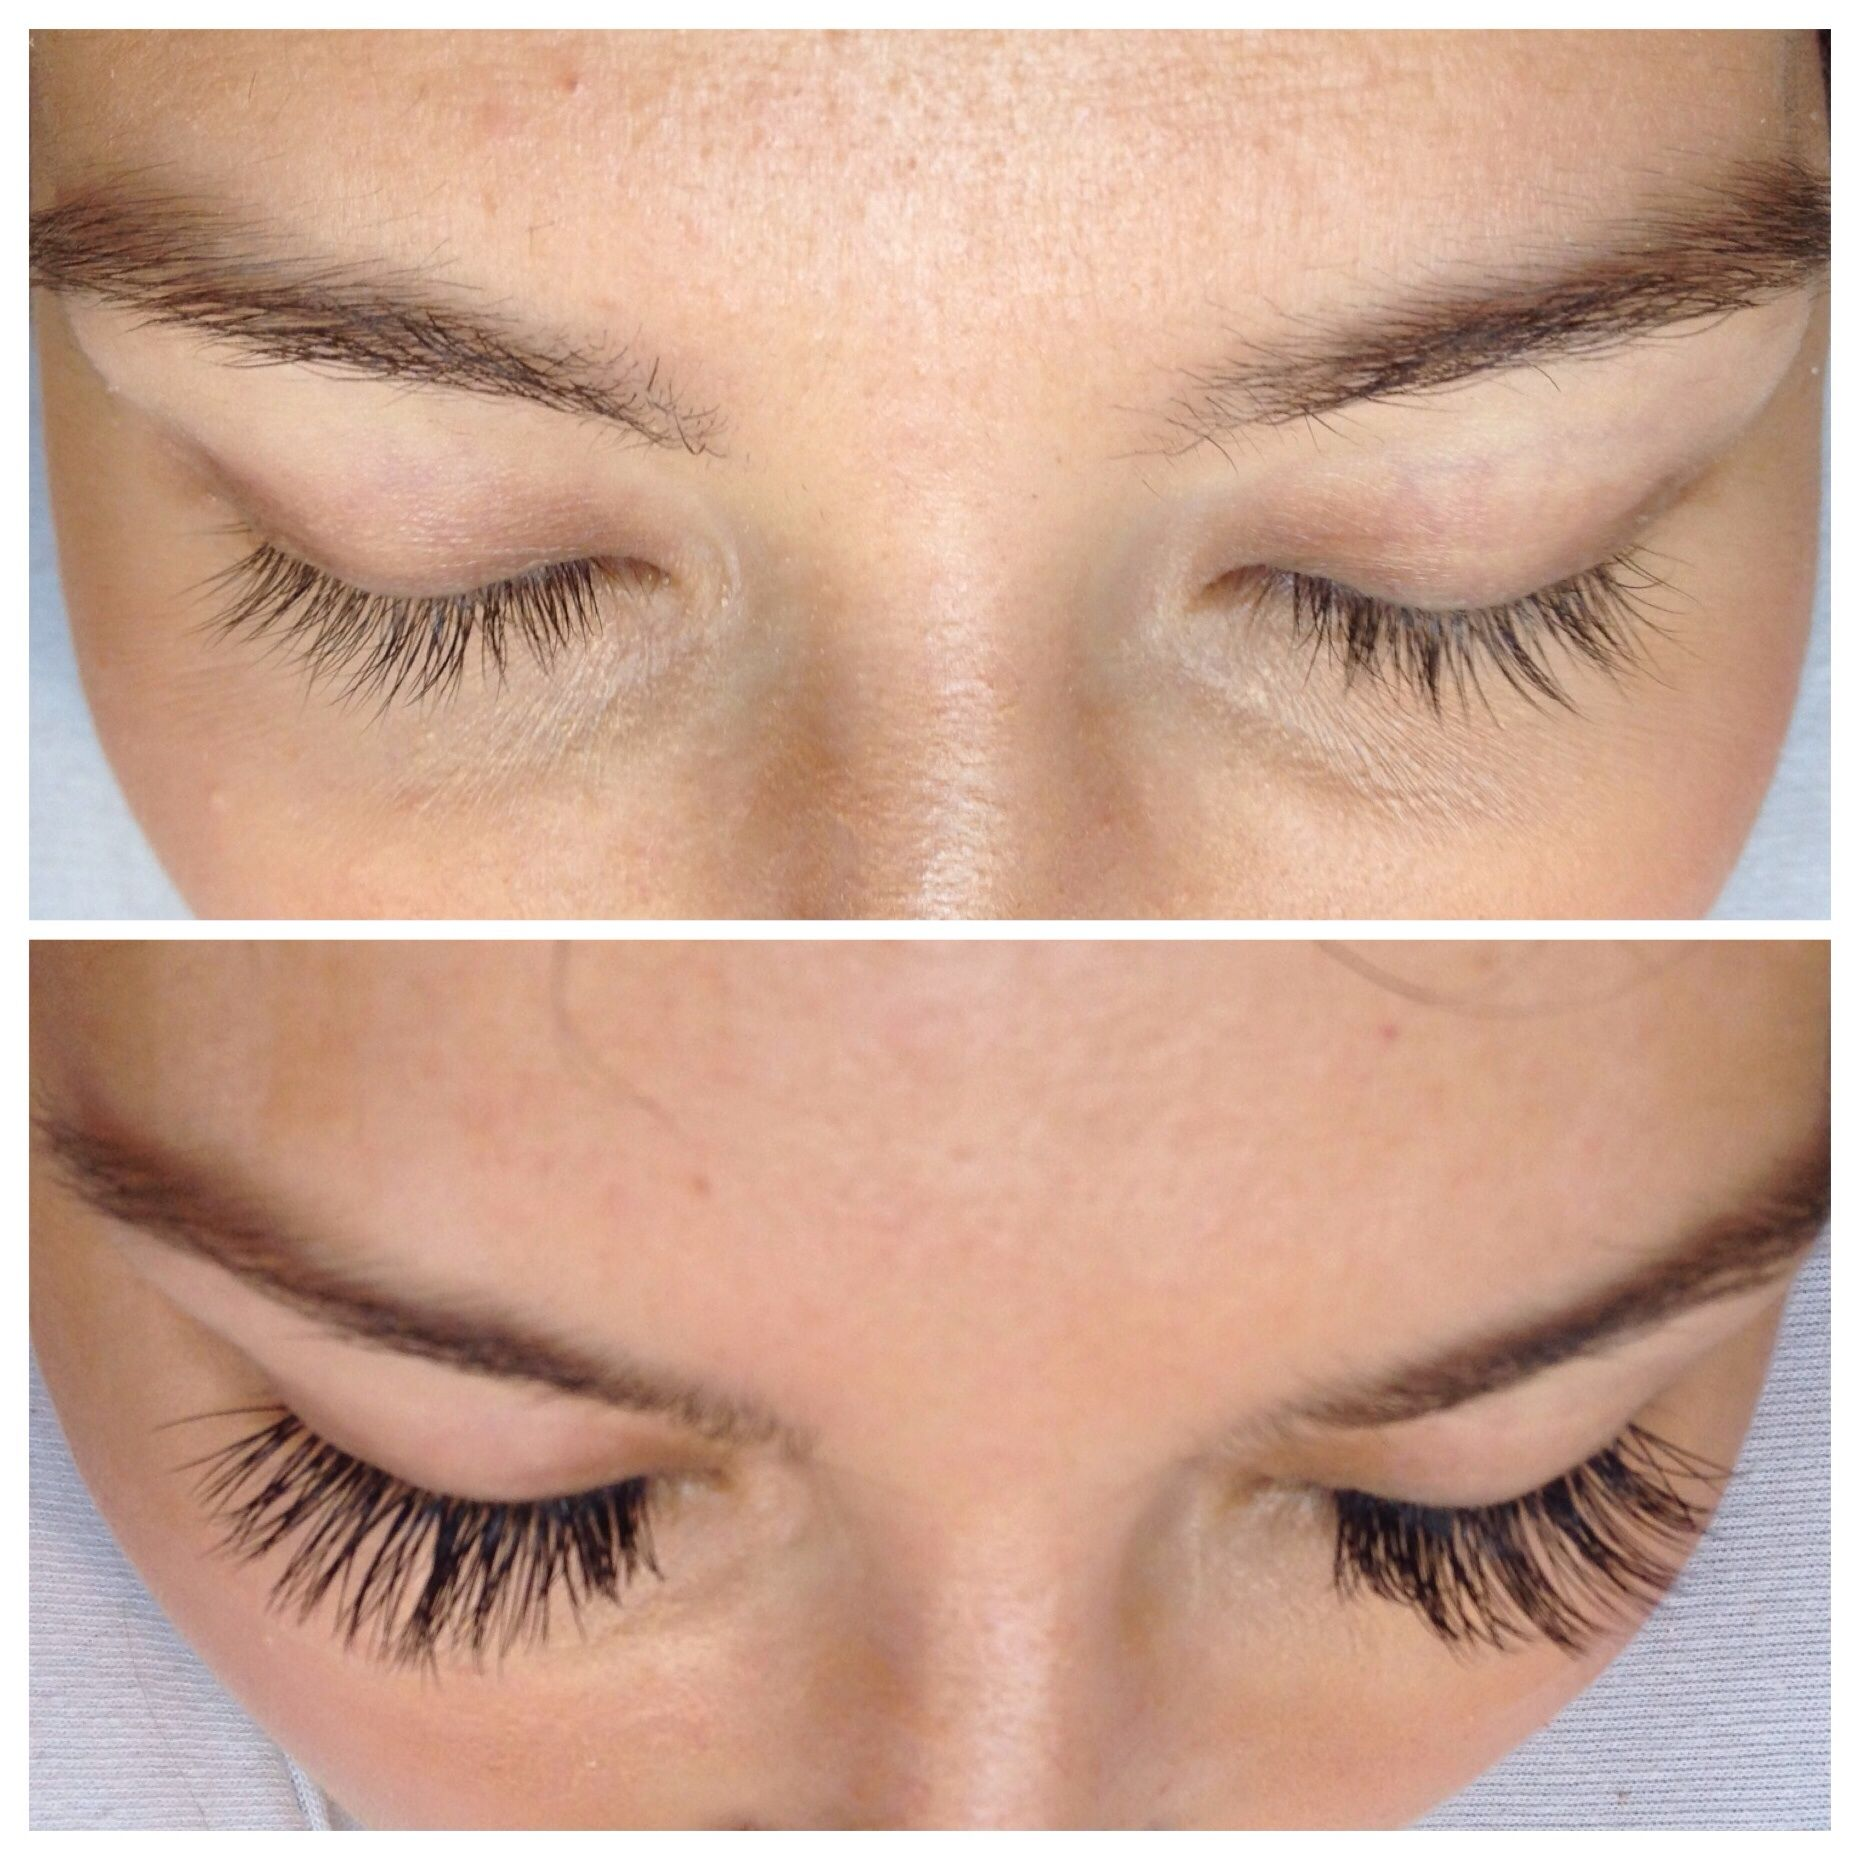 56940ea341f Sparse, uneven lashes can be turned into sexy, fluttery lashes in a couple  of hours!